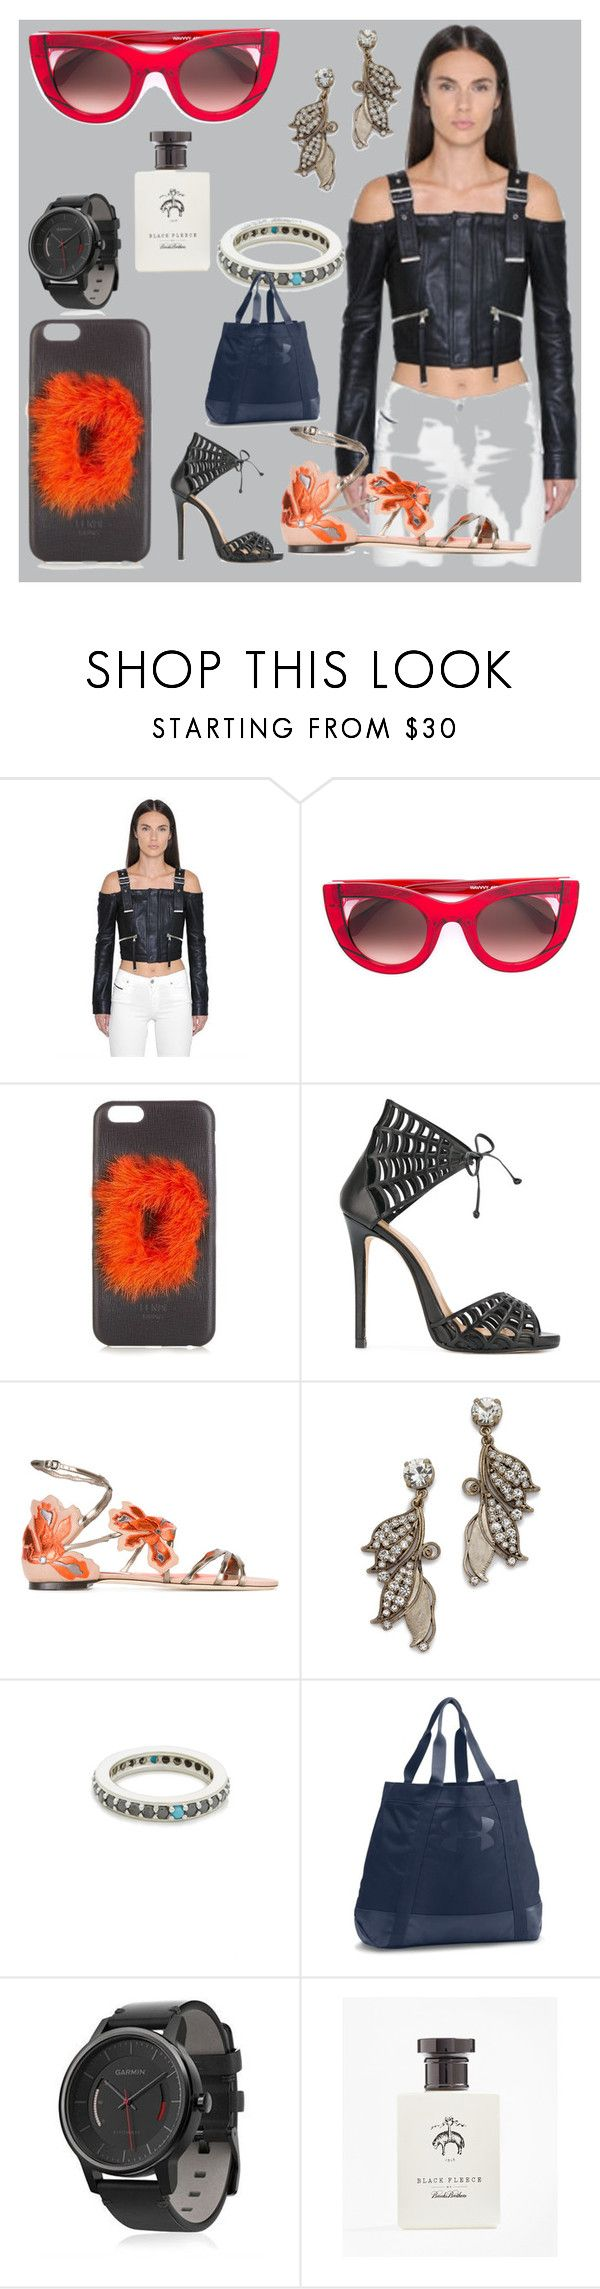 """""""Your style and your store"""" by denisee-denisee ❤ liked on Polyvore featuring Diesel Black Gold, Thierry Lasry, Fendi, Marc Ellis, Jimmy Choo, Lulu Frost, Fayt Jewelry, Under Armour, Garmin and Brooks Brothers"""